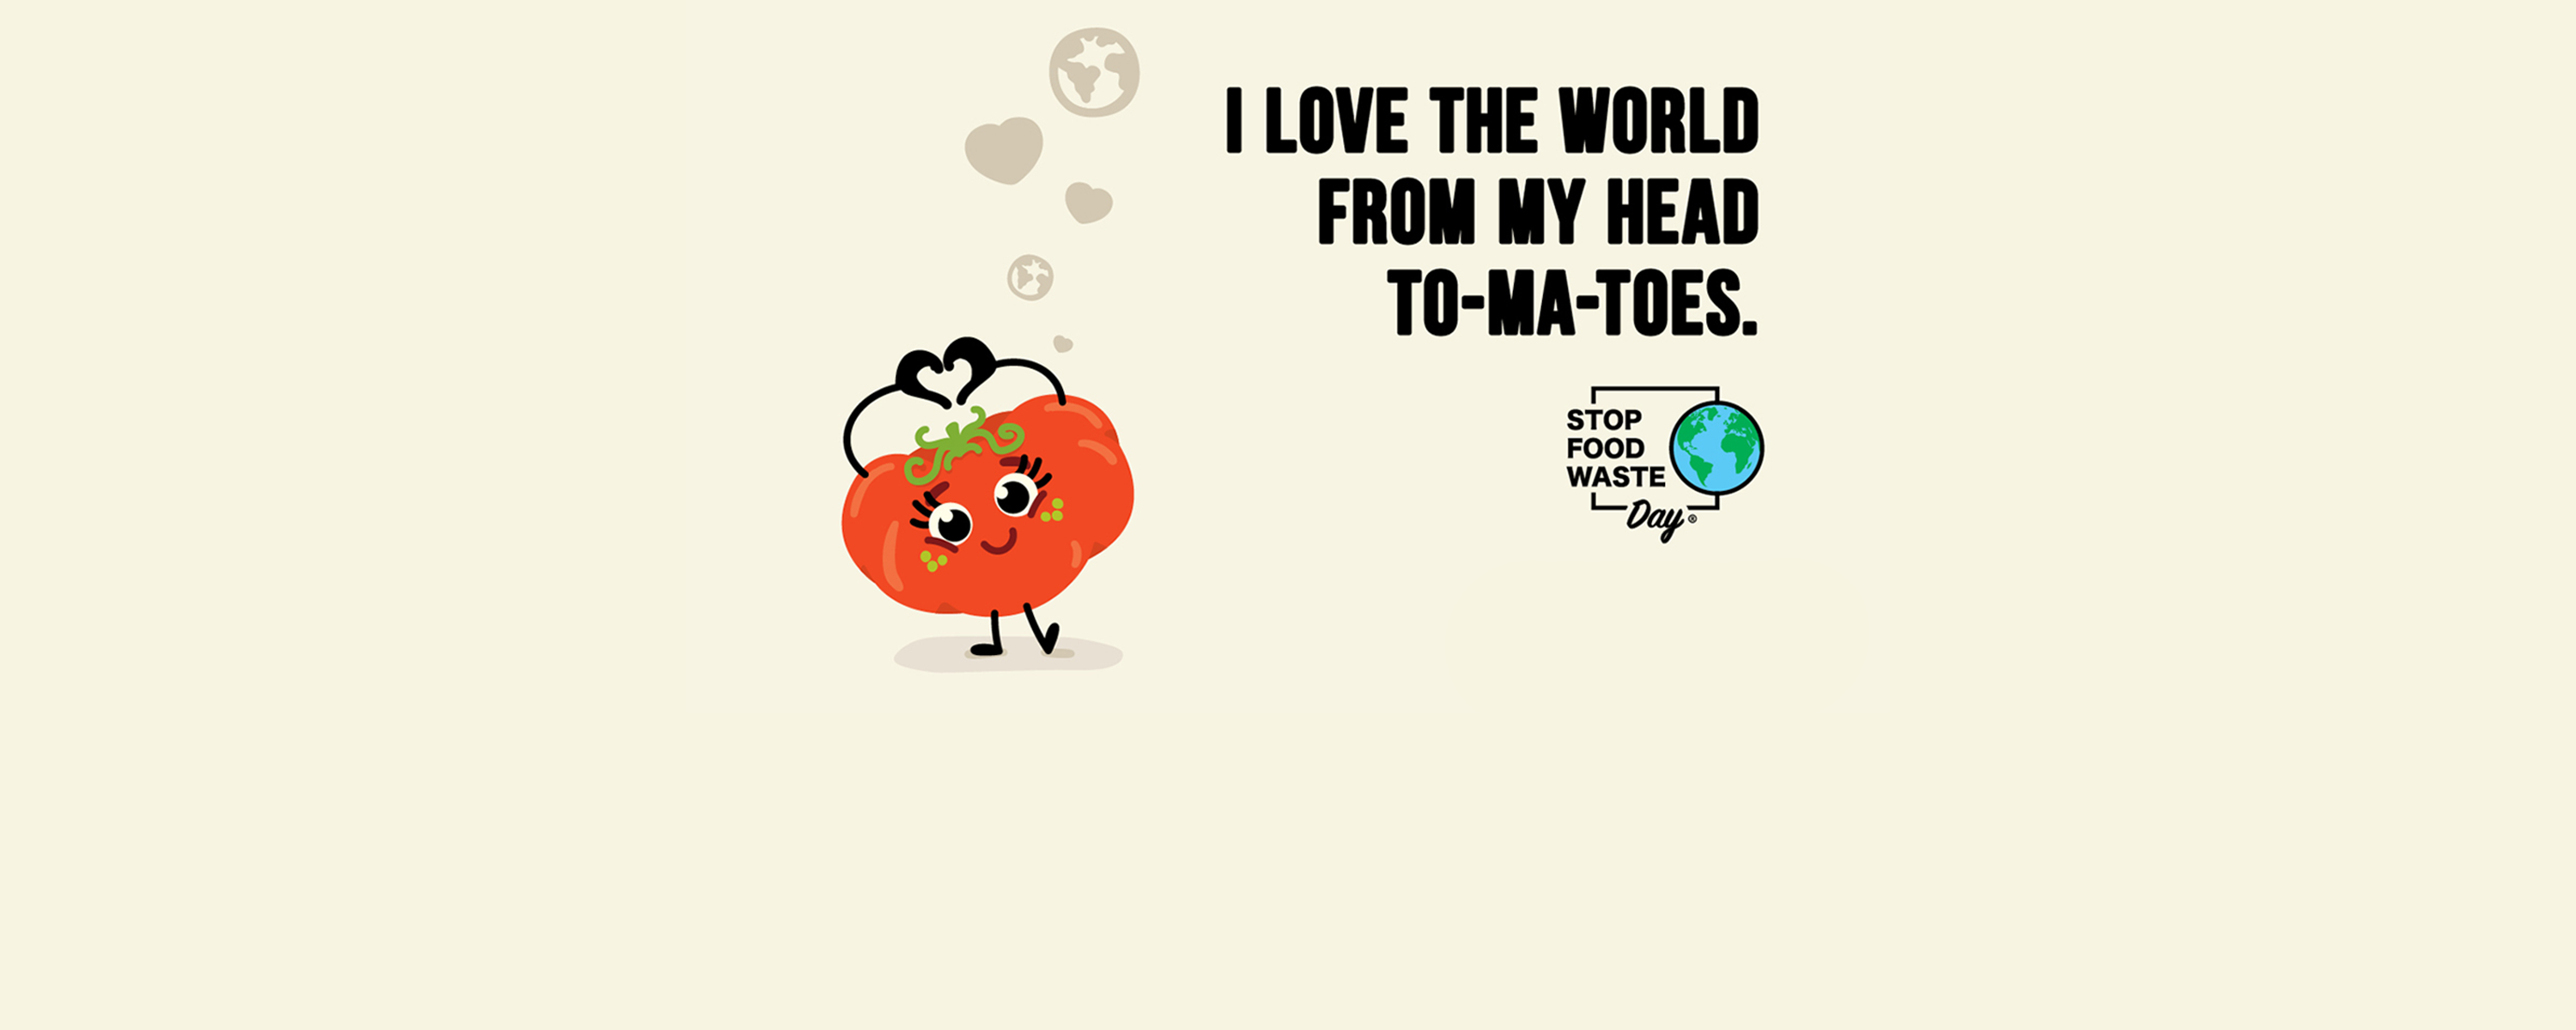 i love the world from my head to-ma-toes